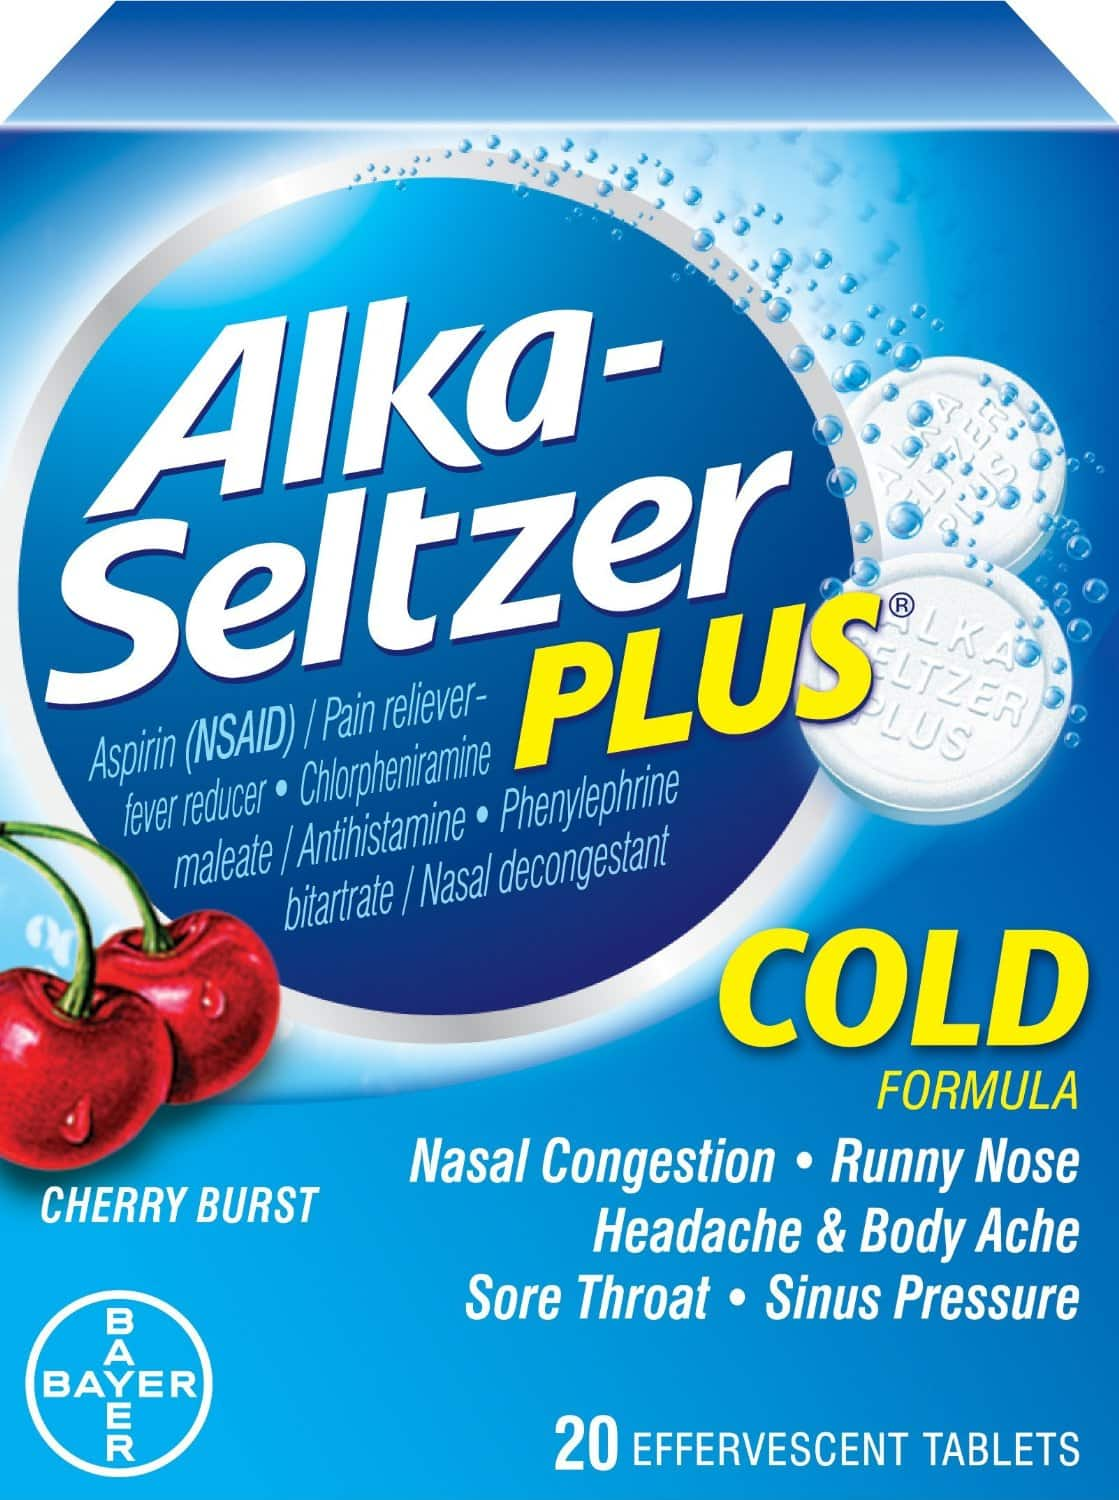 20-Count Alka-Seltzer Plus Effervescent Tablets (Cherry Zest)  $3.70 + Free Shipping